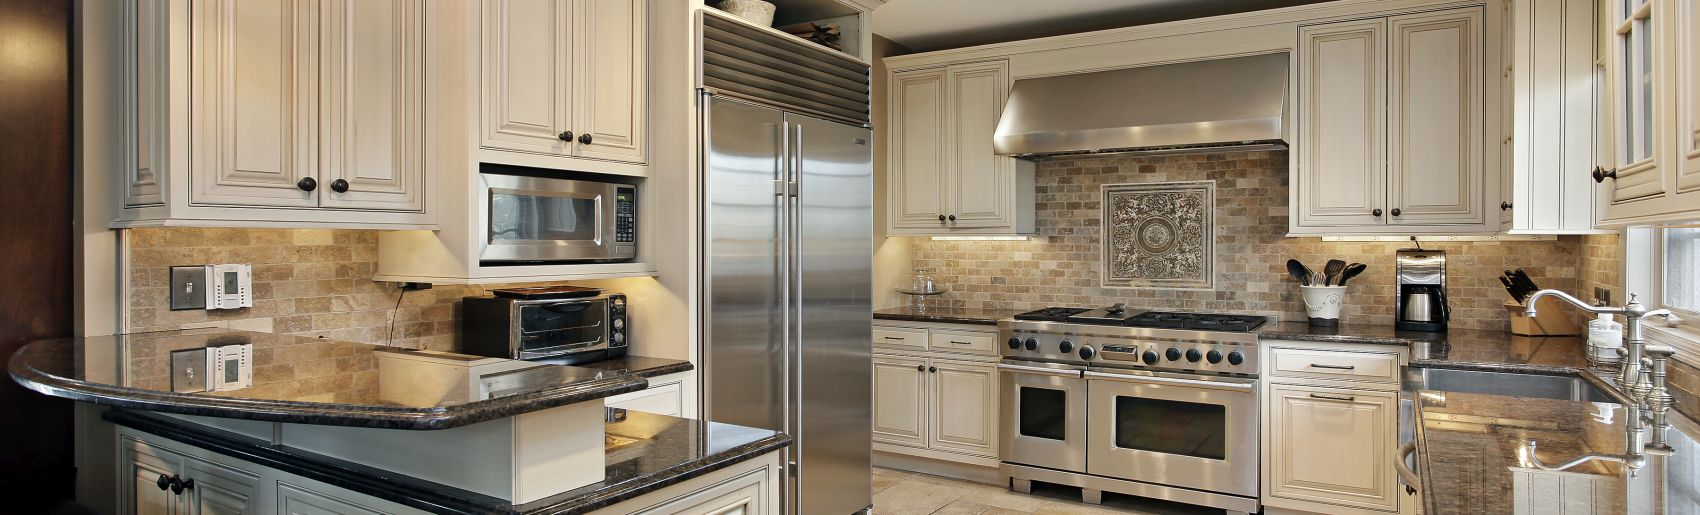 Cedar Rapids Kitchen Cabinet Refinishing